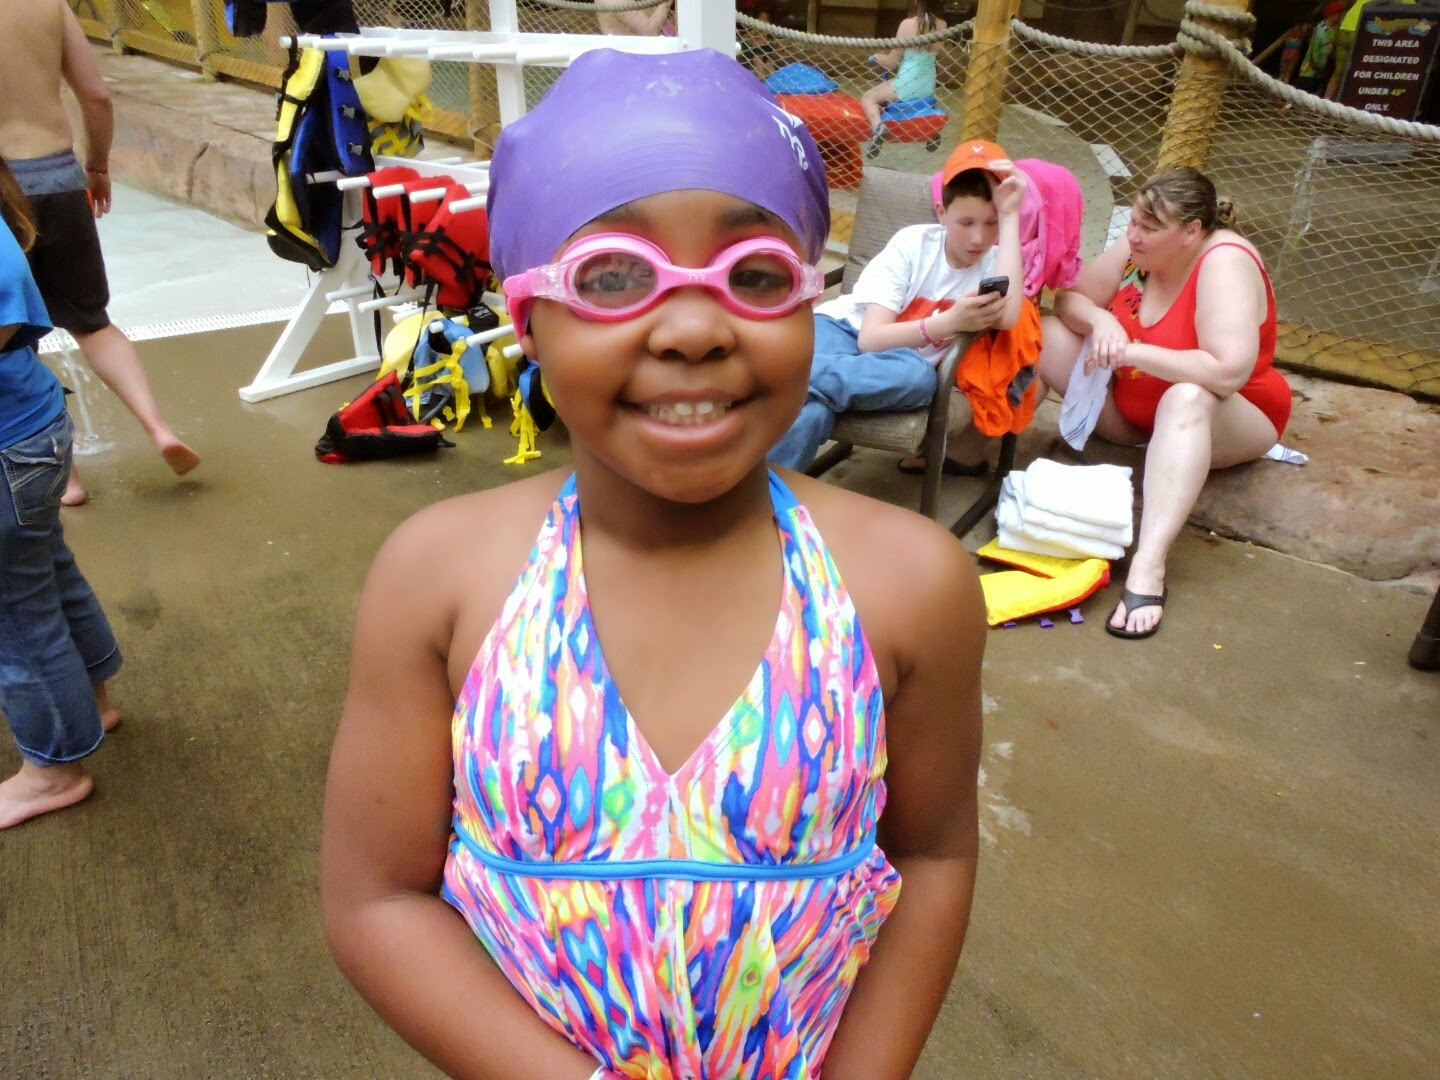 Spring Break at the Smoky Mountains Tennessee  via www.productreviewmom.com